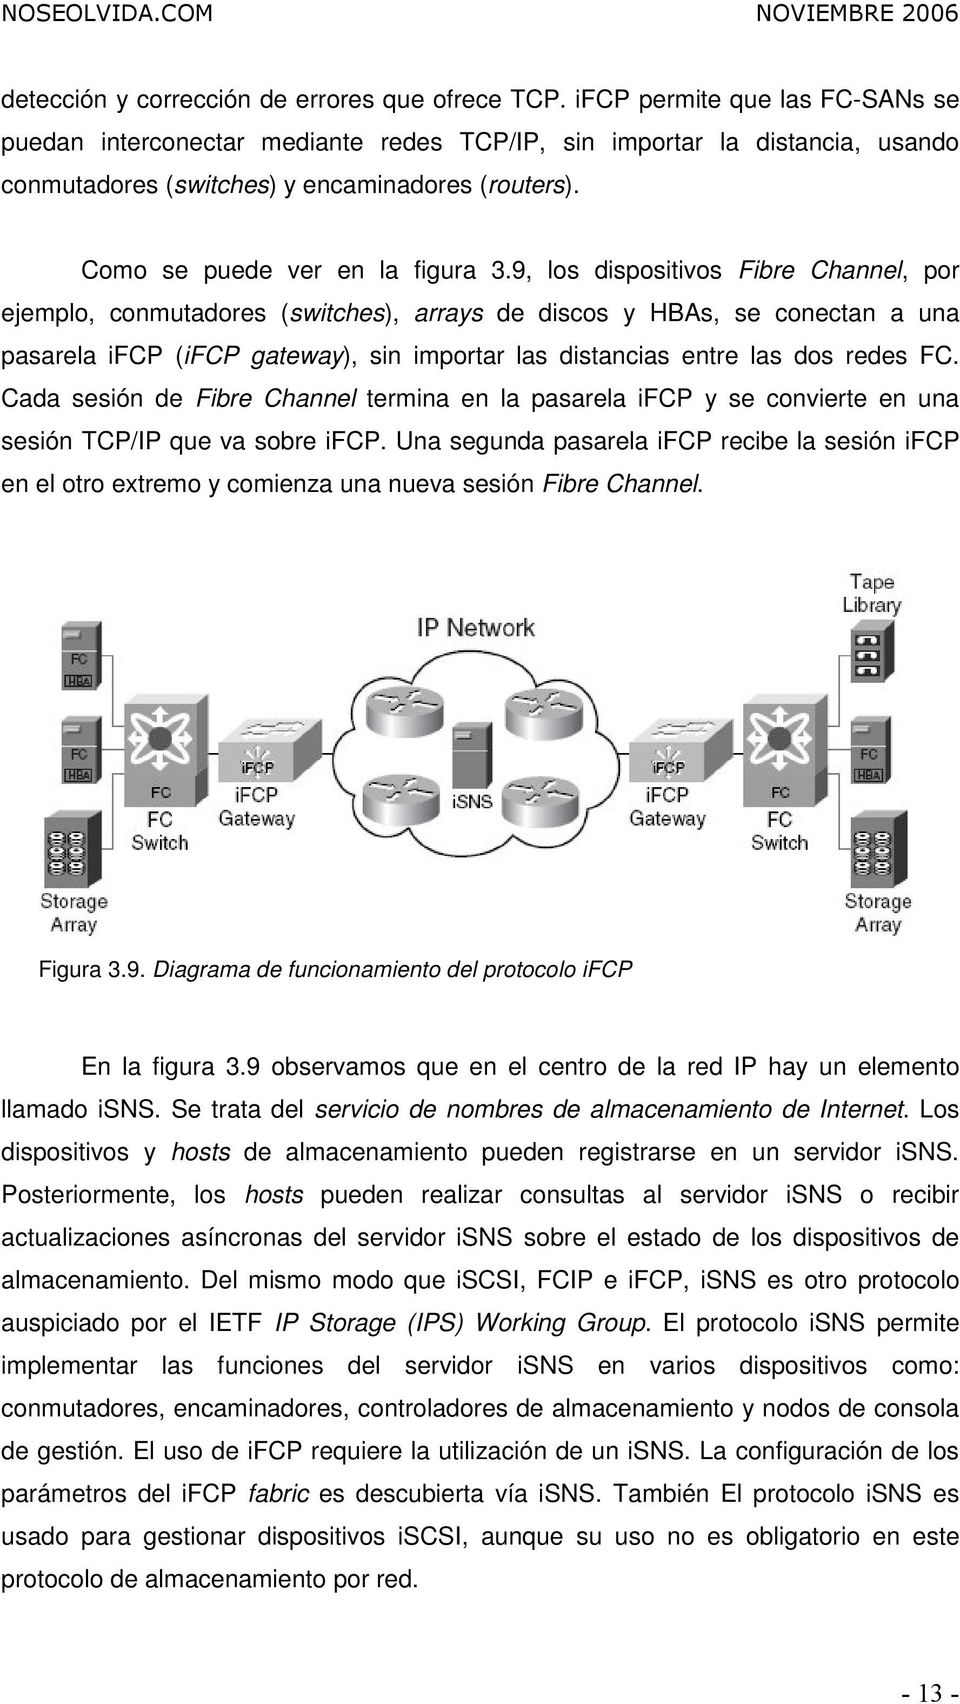 9, los dispositivos Fibre Channel, por ejemplo, conmutadores (switches), arrays de discos y HBAs, se conectan a una pasarela ifcp (ifcp gateway), sin importar las distancias entre las dos redes FC.